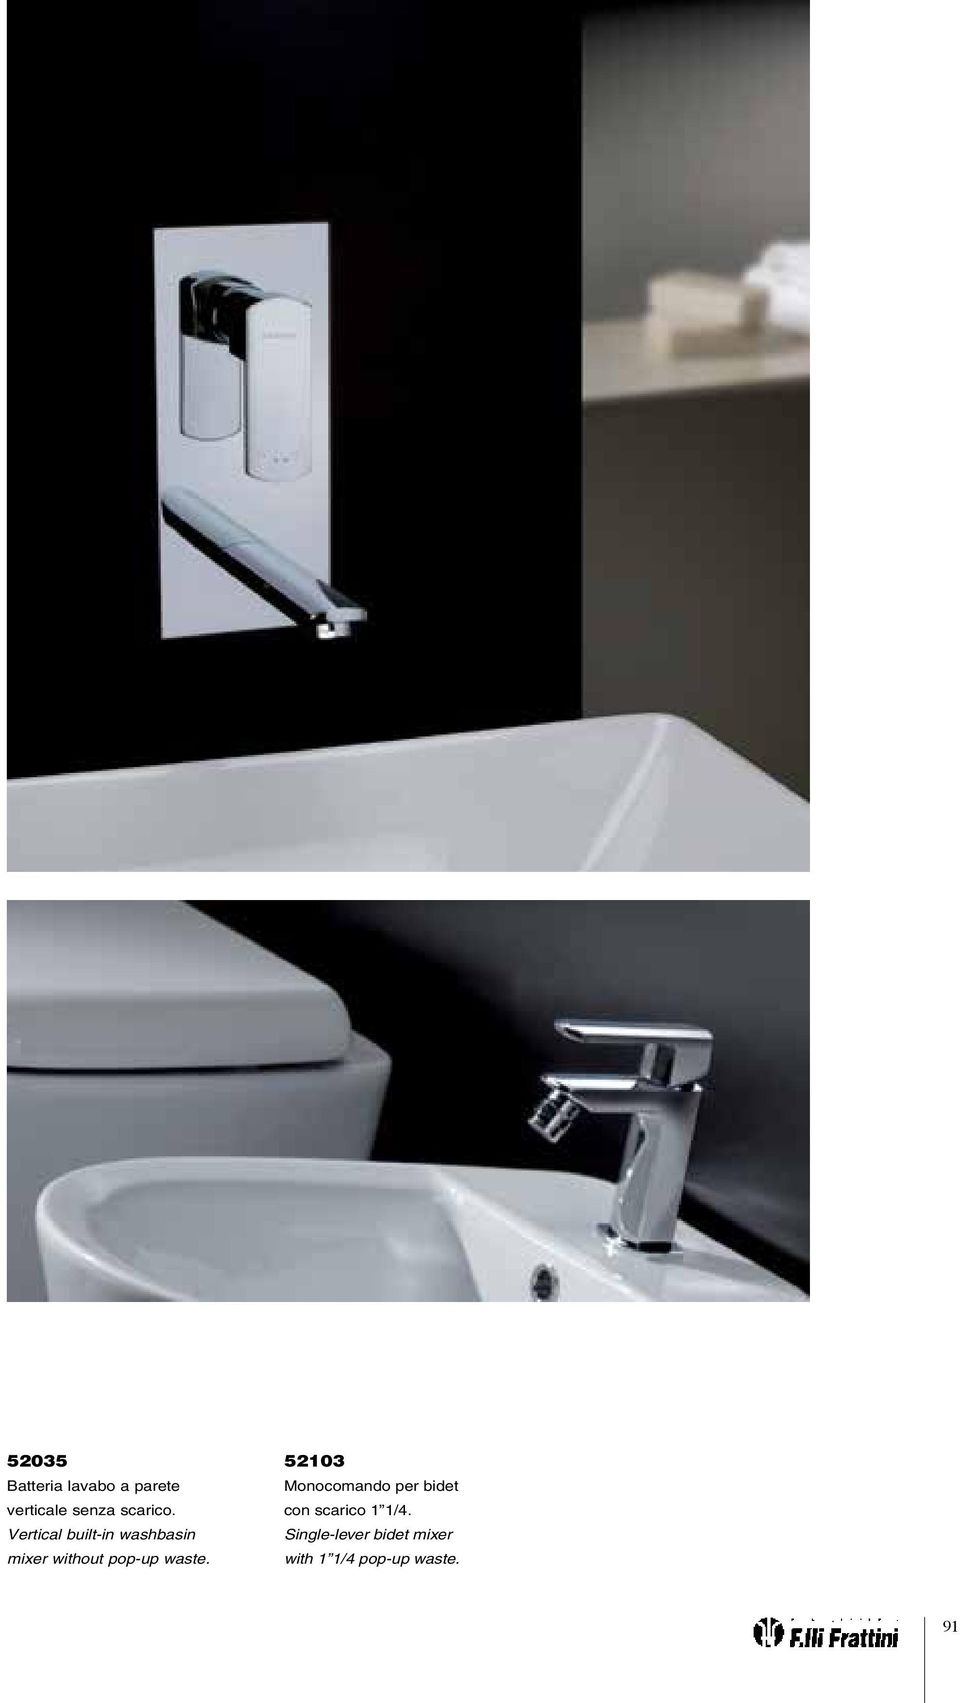 Vertical built-in washbasin mixer without pop-up